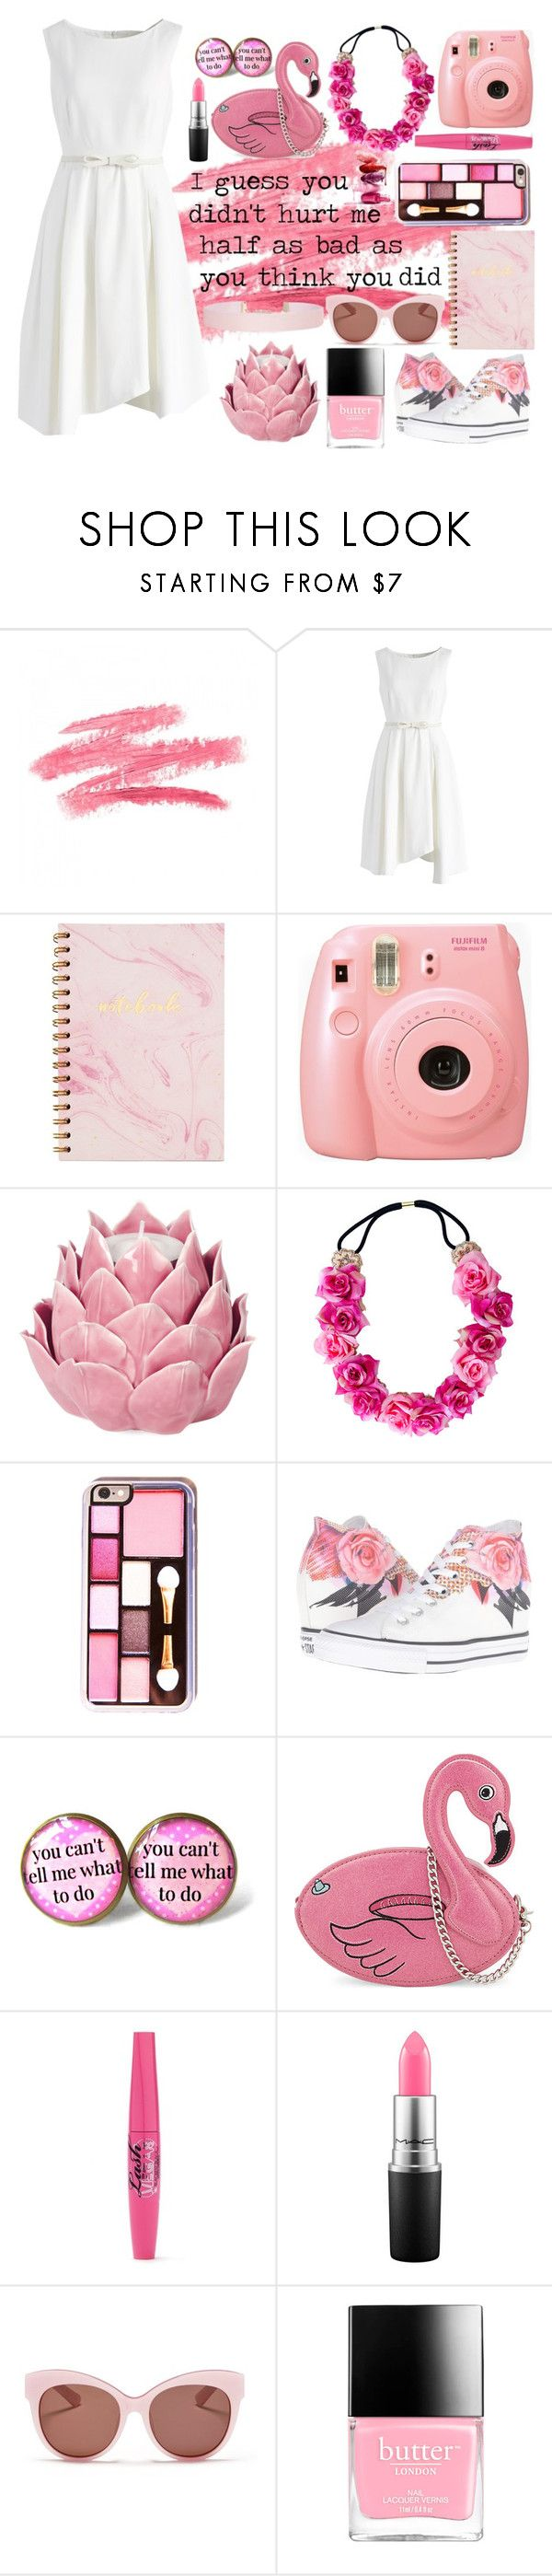 """Untitled #161"" by modest-texan ❤ liked on Polyvore featuring Chicwish, Fujifilm, Zara Home, Converse, Skinnydip, MAC Cosmetics, Blanc & Eclare, Butter London and Humble Chic"